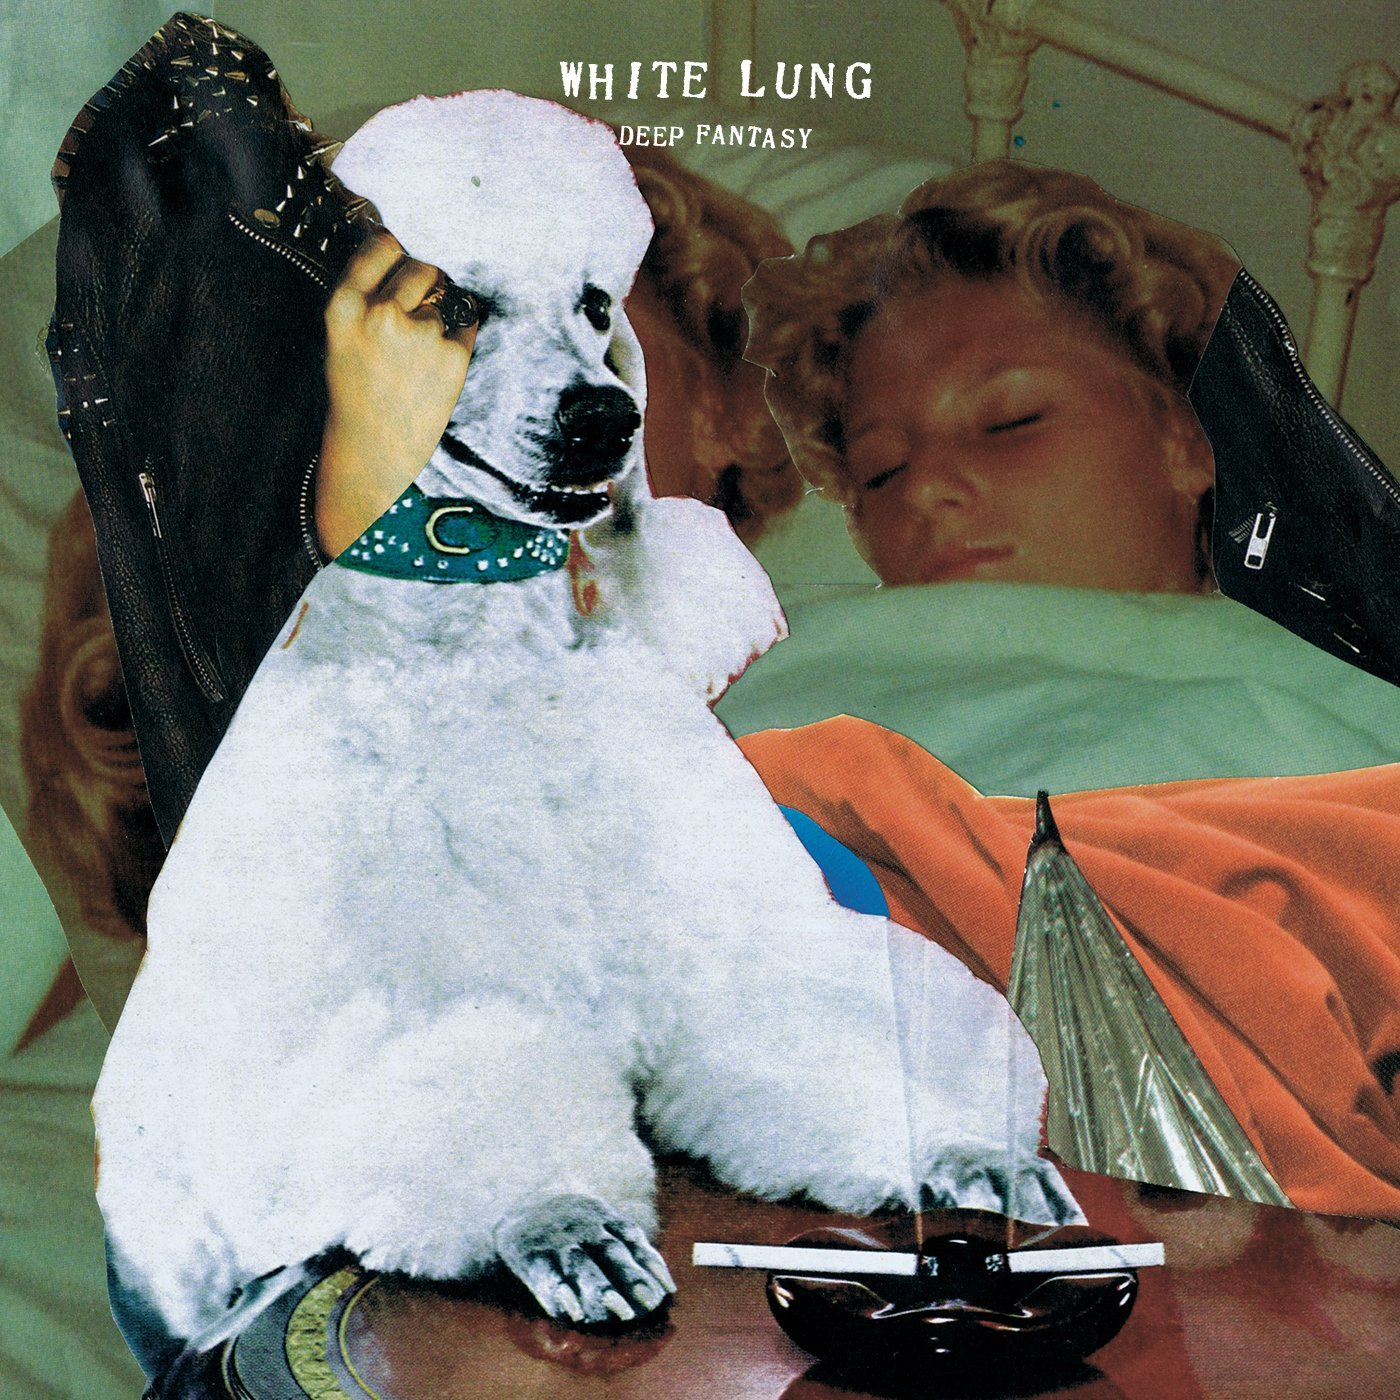 white lung deep fantasy Top 50 Songs of 2014